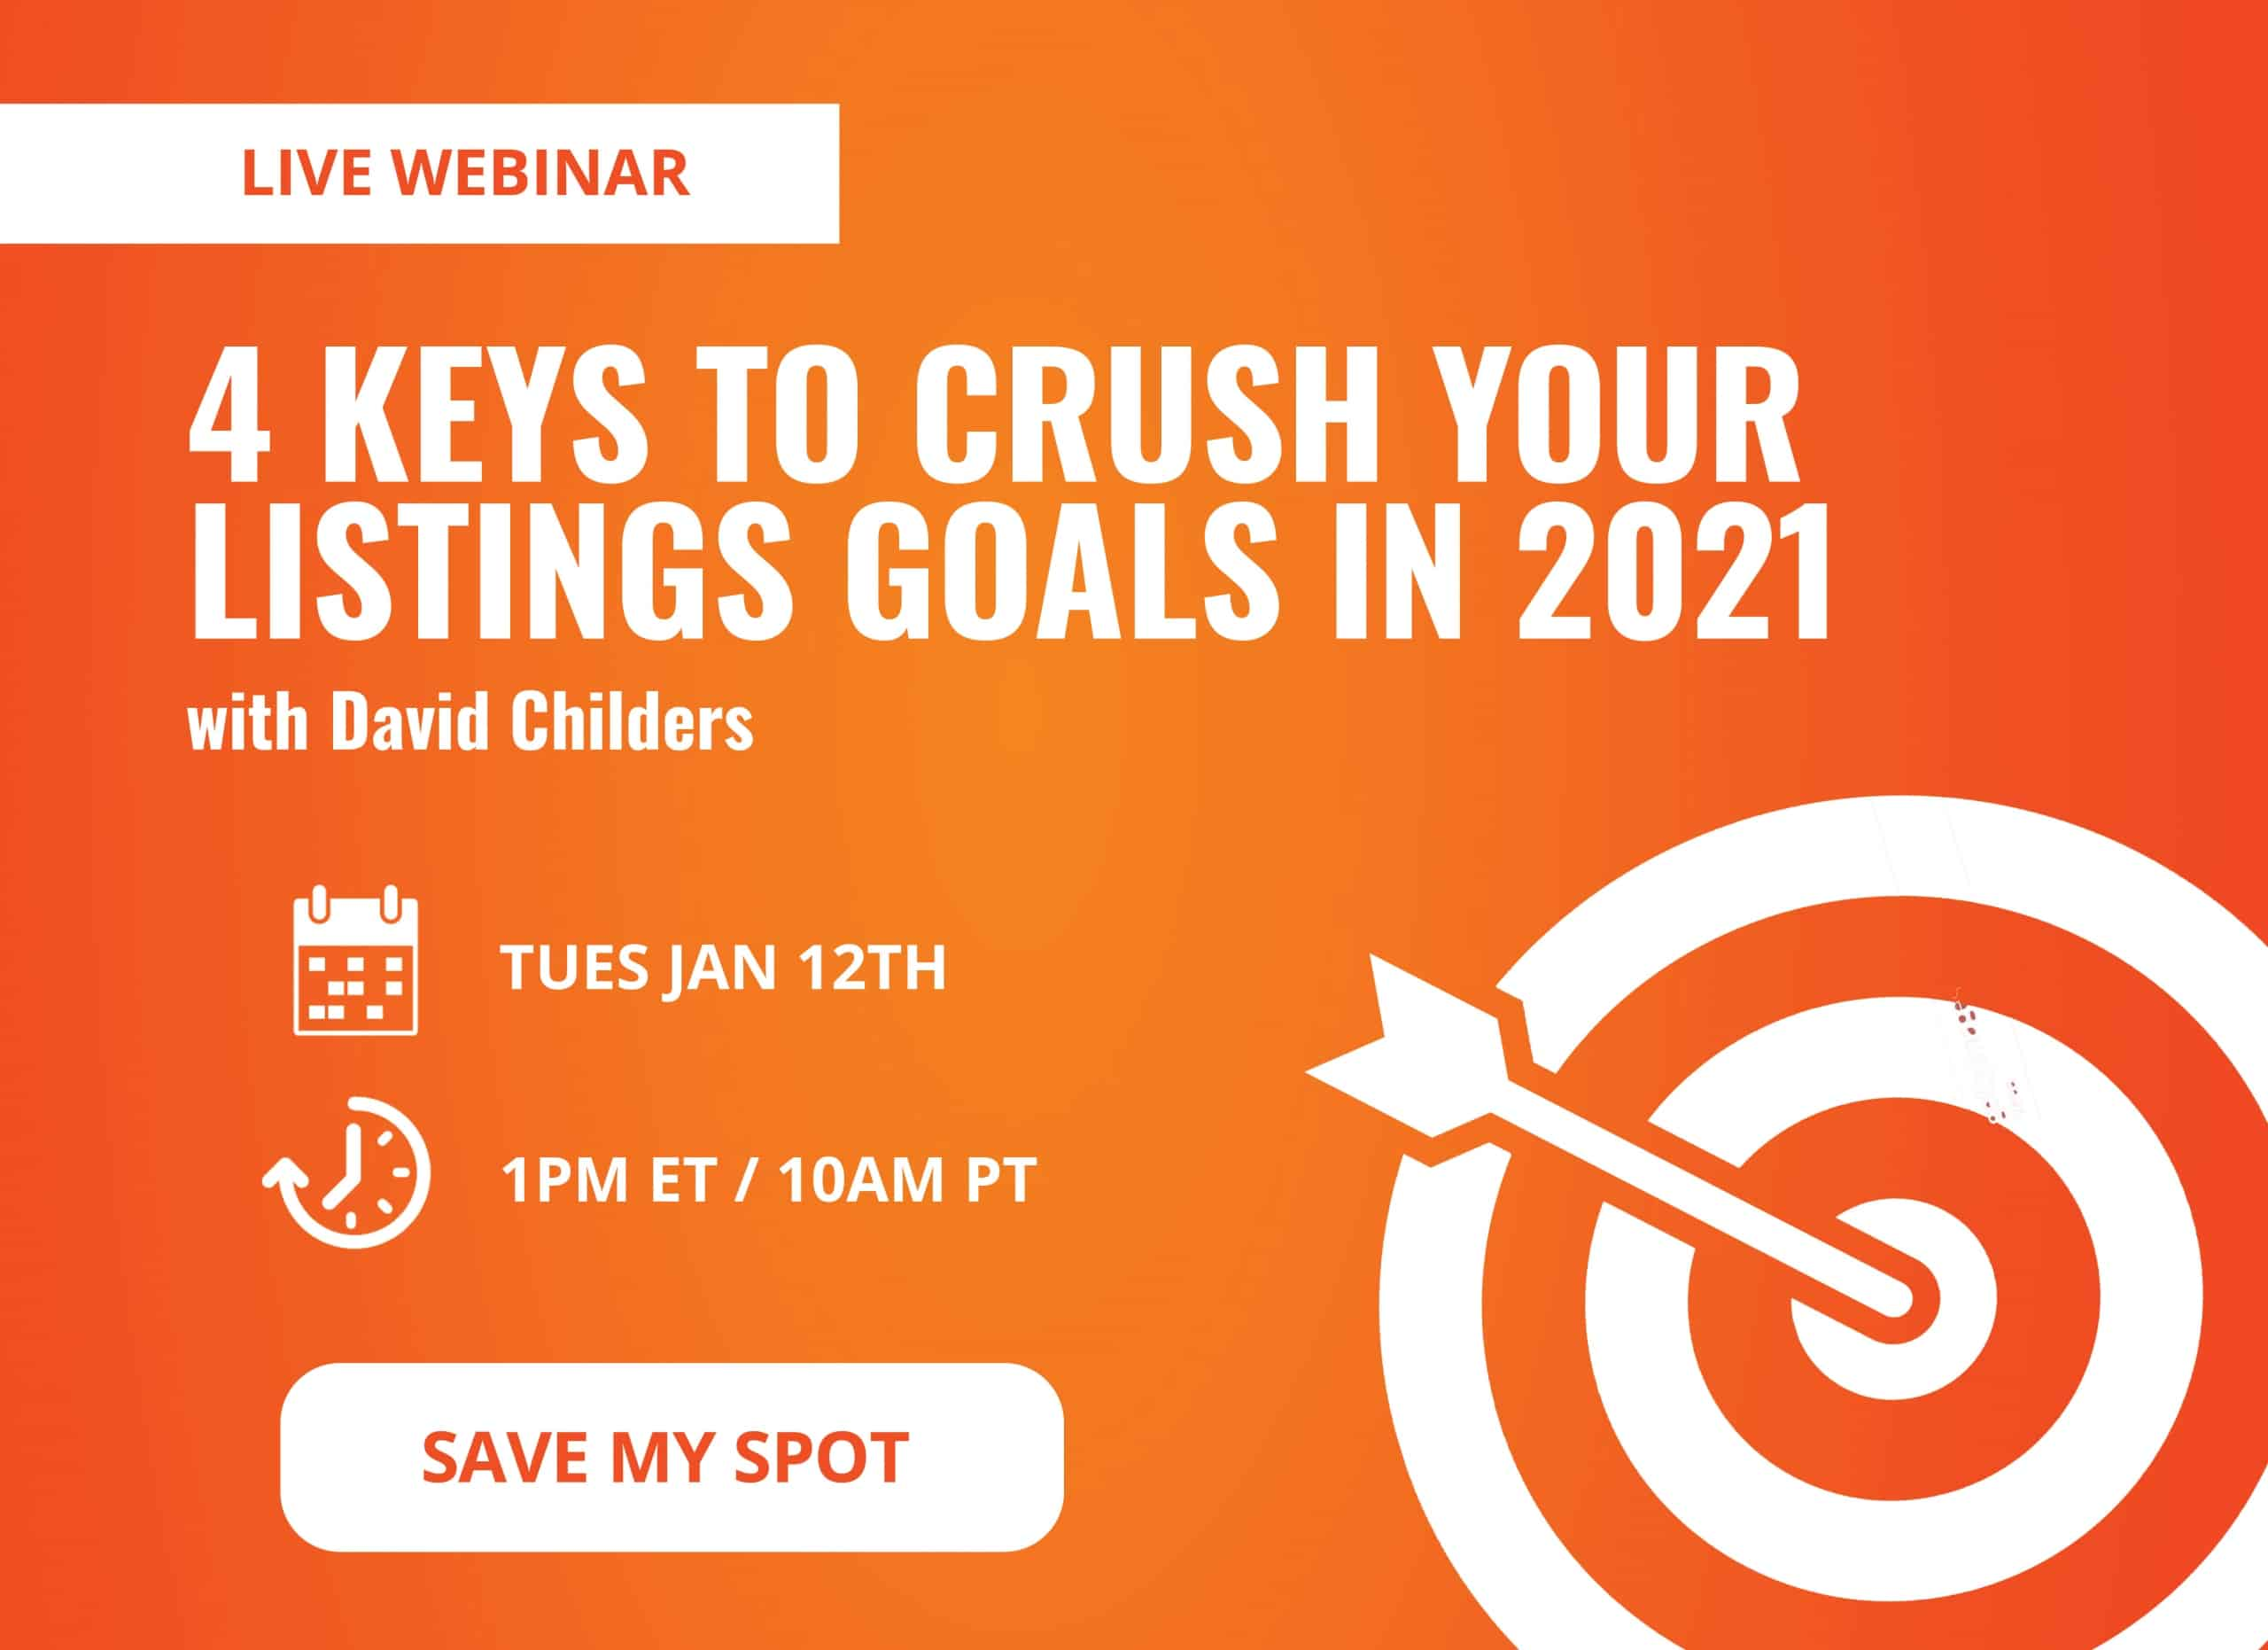 4 Keys to Crush Your Listings Goals in 2021 | Keeping Current Matters